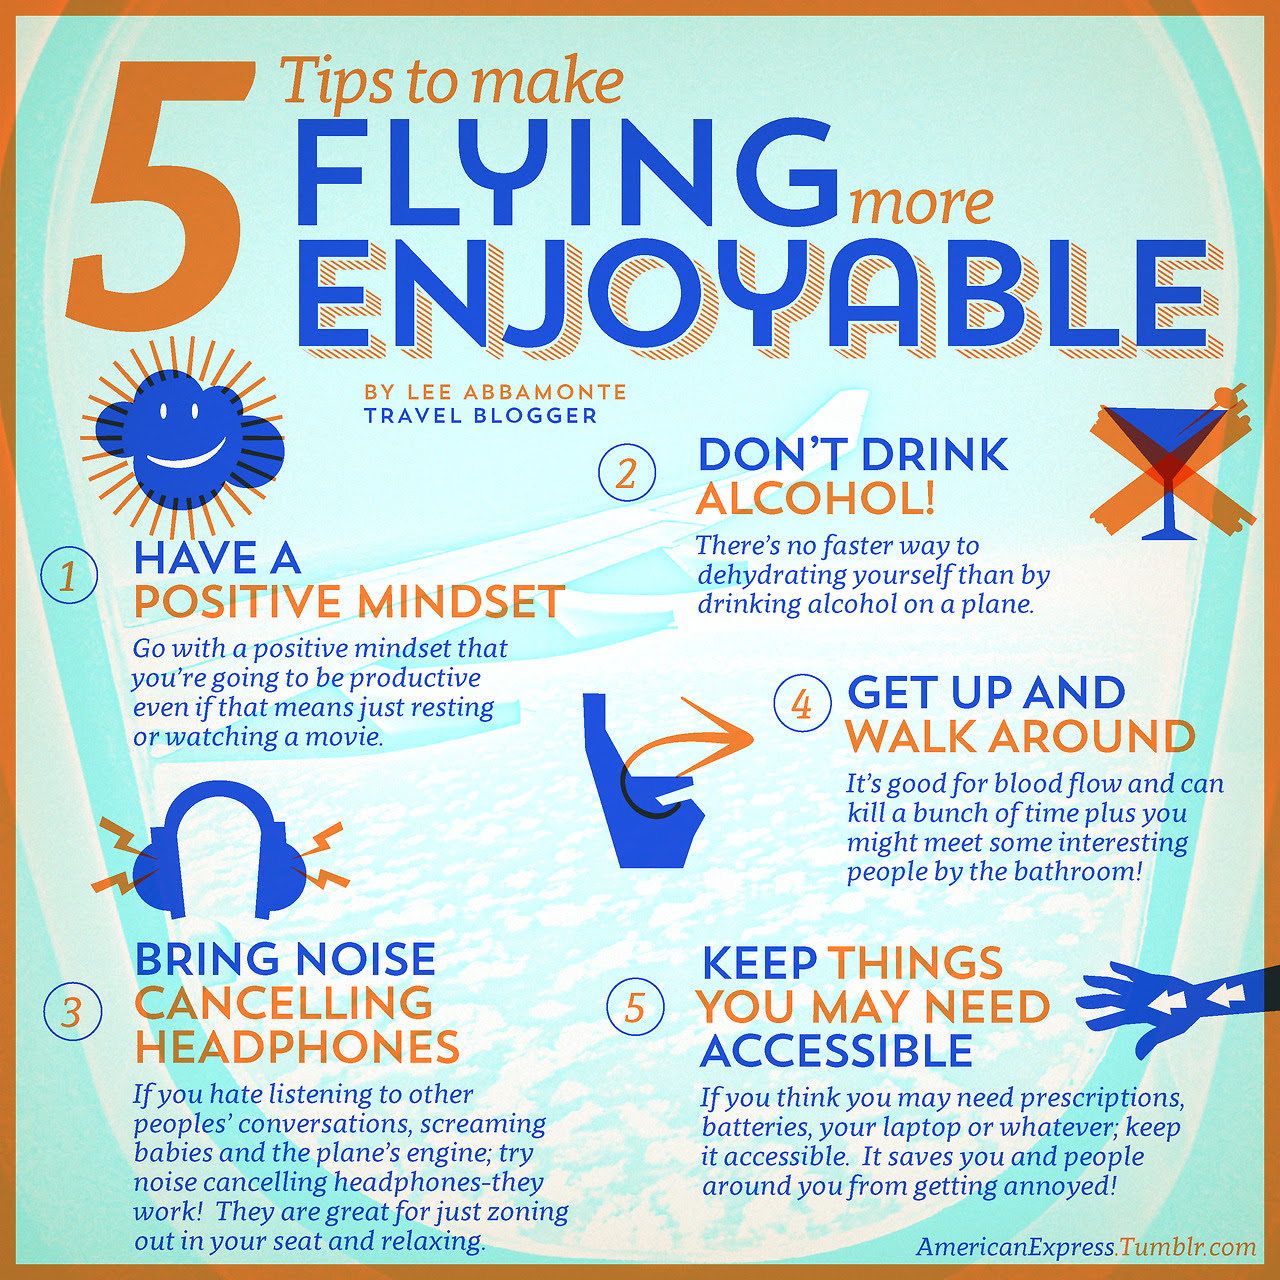 How to Make Flying More Enjoyable for Your Family